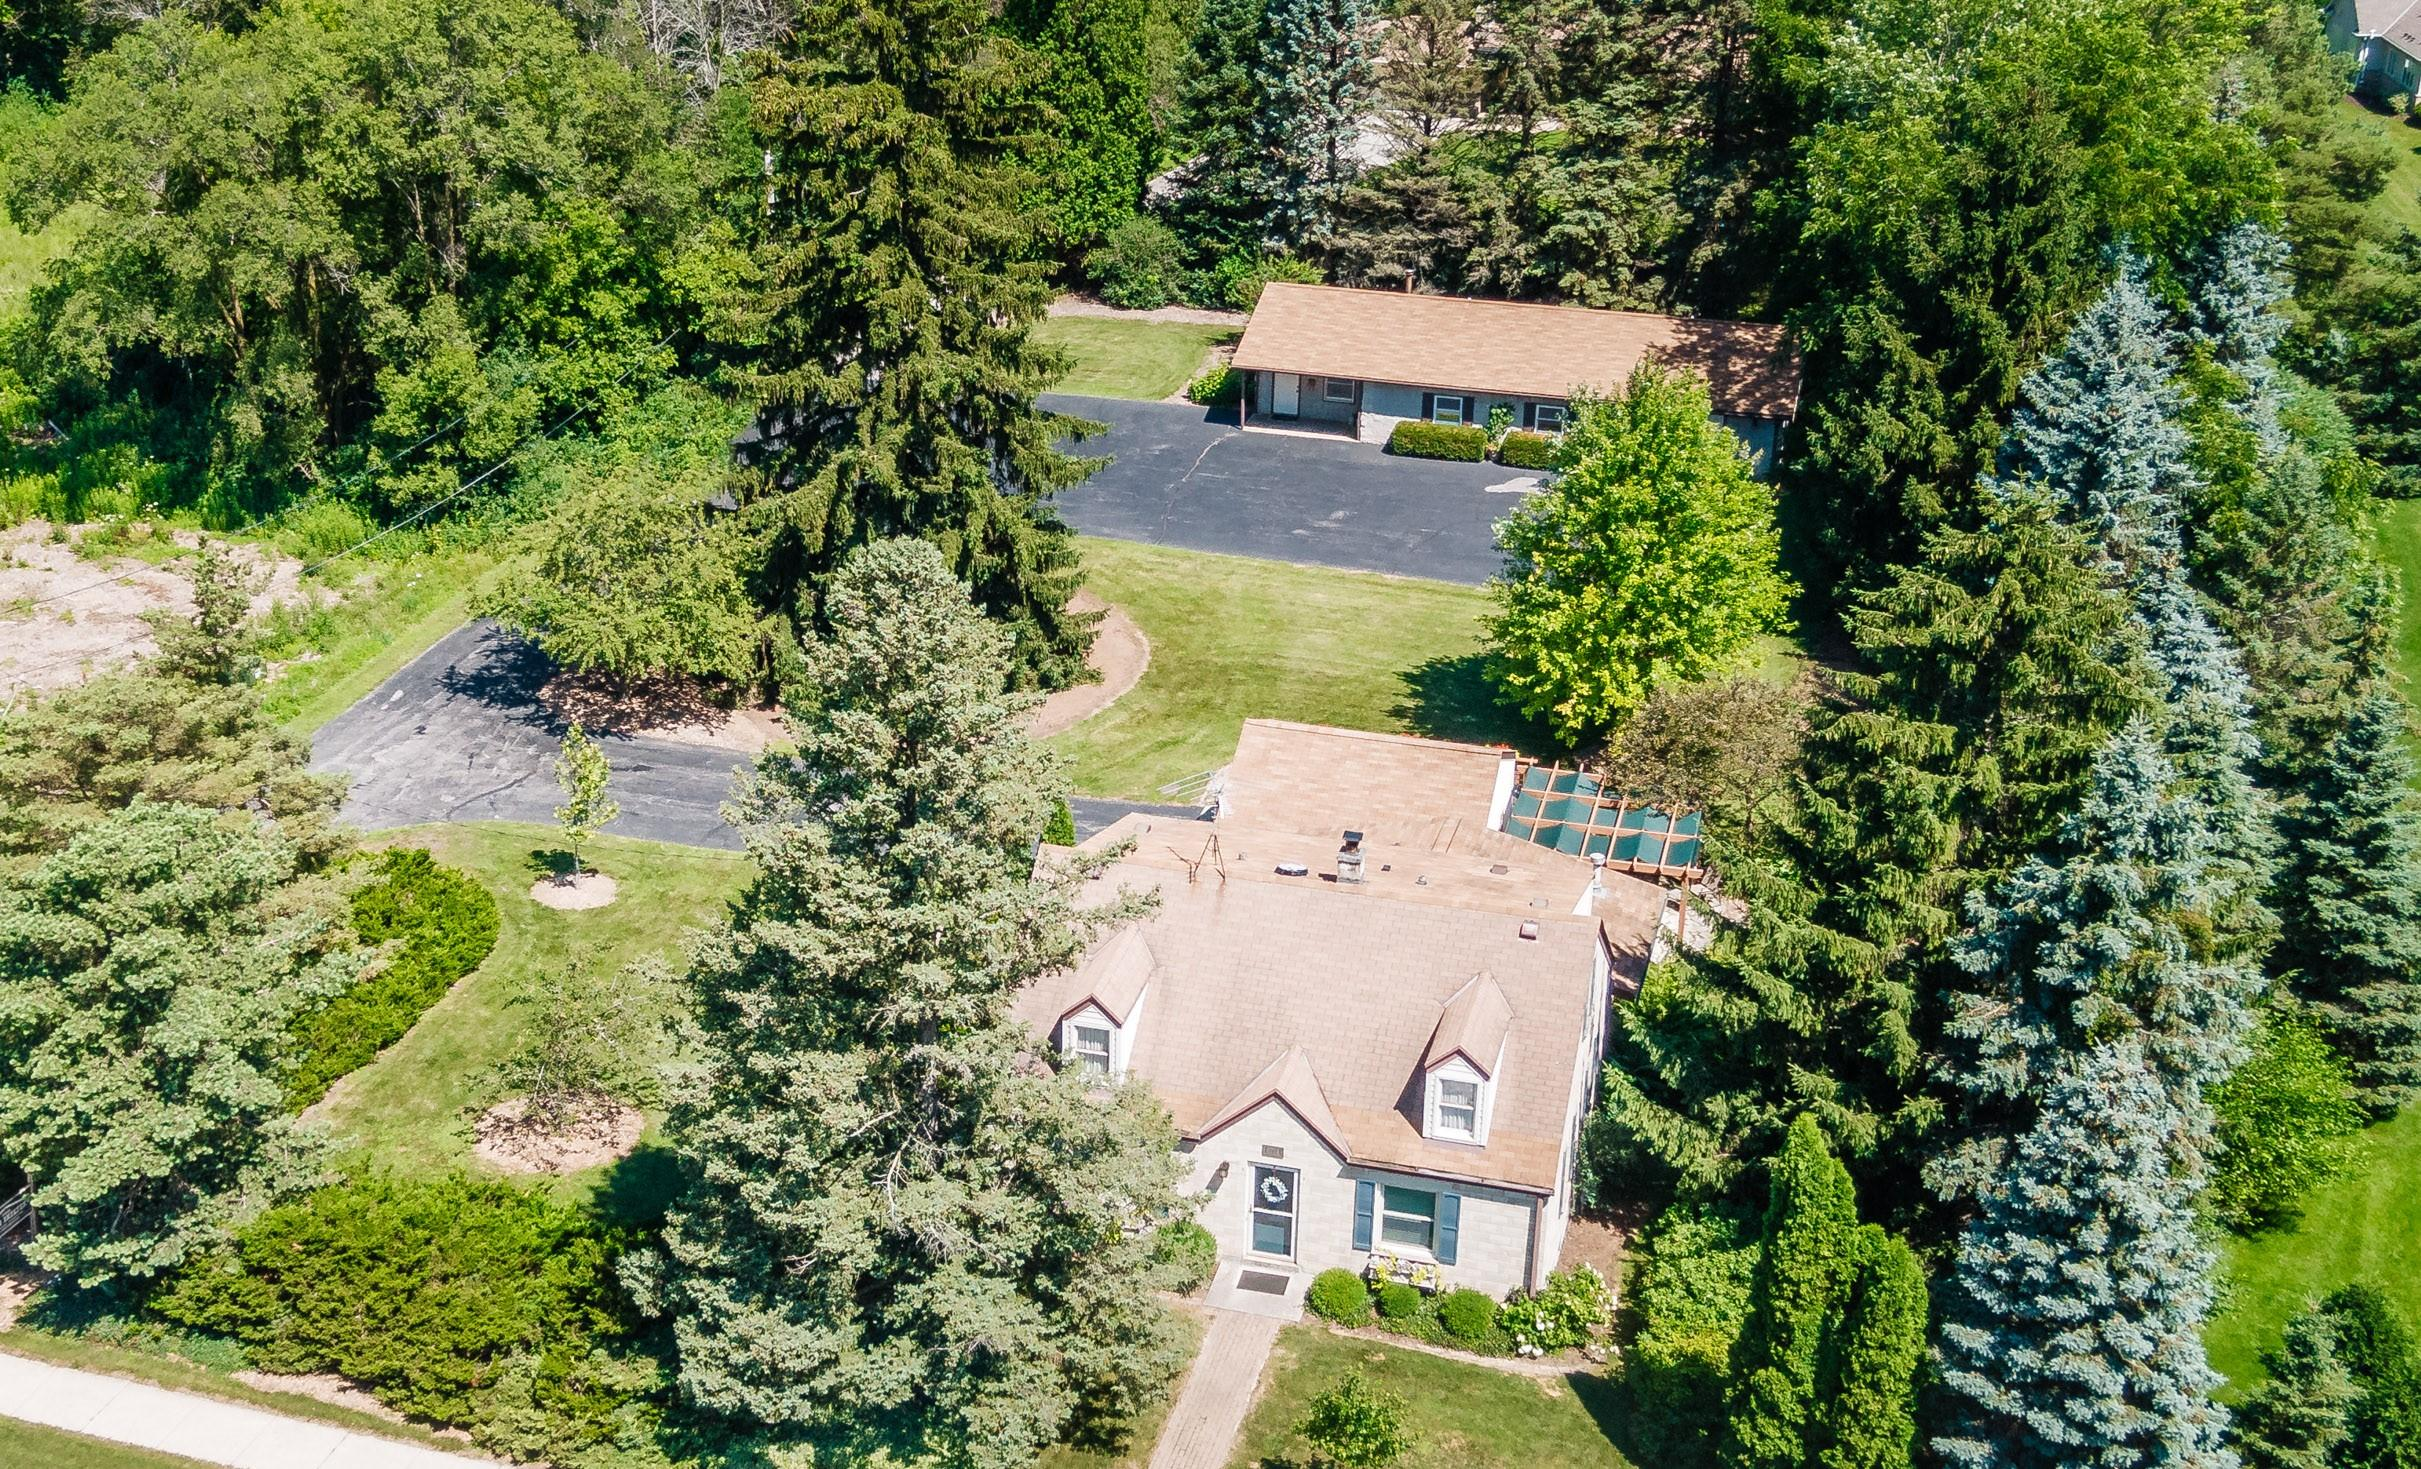 Photo of 6714 W Mequon Rd, Mequon, WI 53092